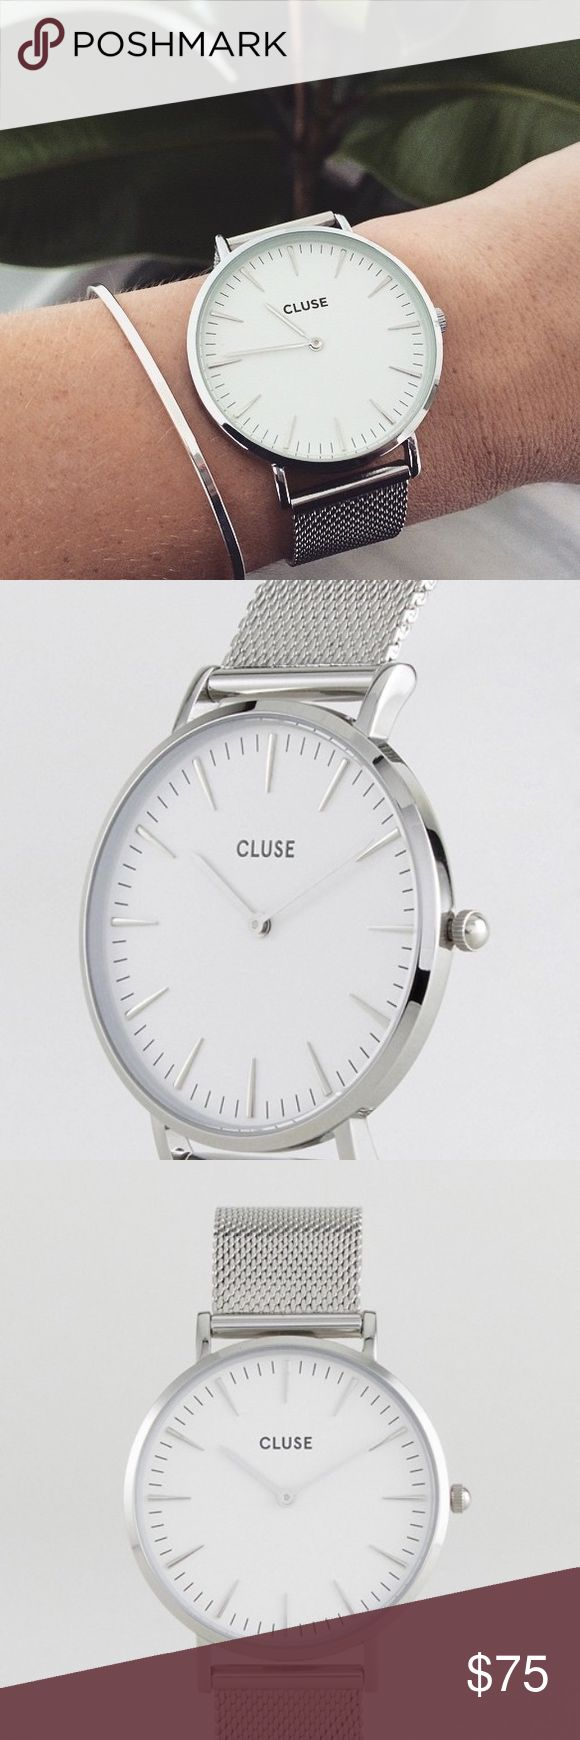 Cluse La Boheme Mesh Silver White Watch Elegantly simple & classy watch. Silver stainless steel mesh band with clasp and a clean minimalist style watch face. Matches with everything😊 Brand new with tags!   Watch face 38mm diameter. Wrist band 18mm wide. Cluse Accessories Watches